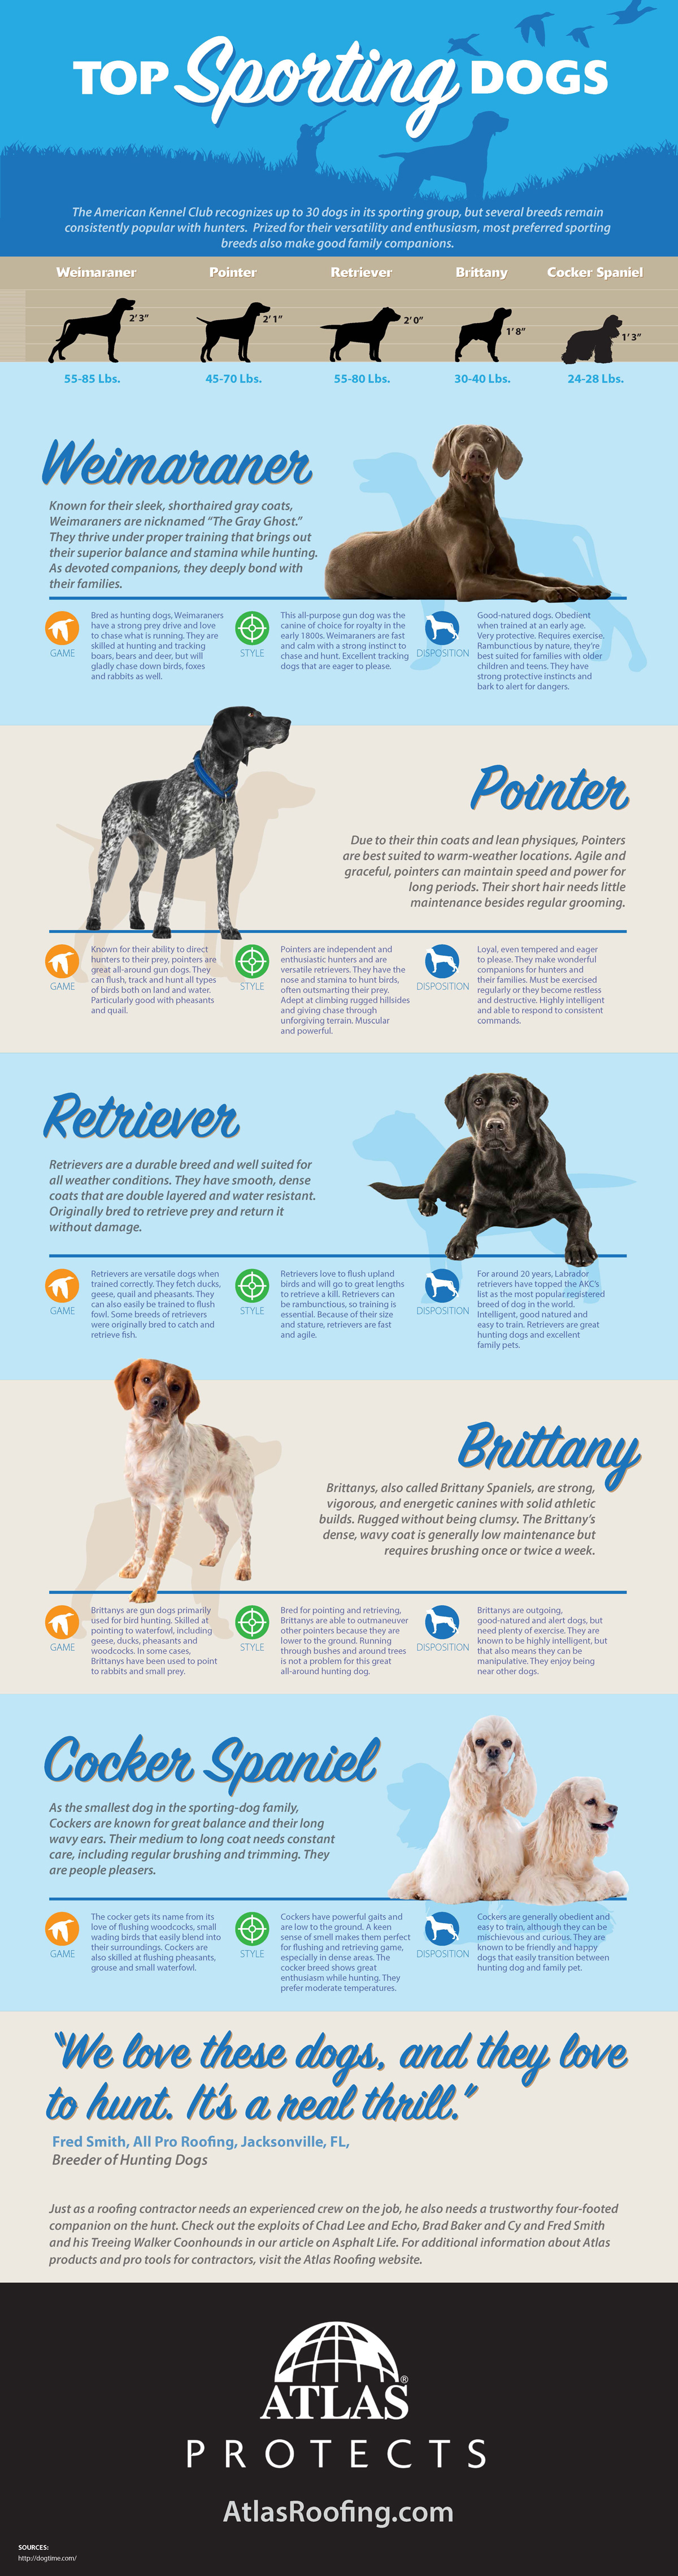 Types of Hunting Dogs Infographic